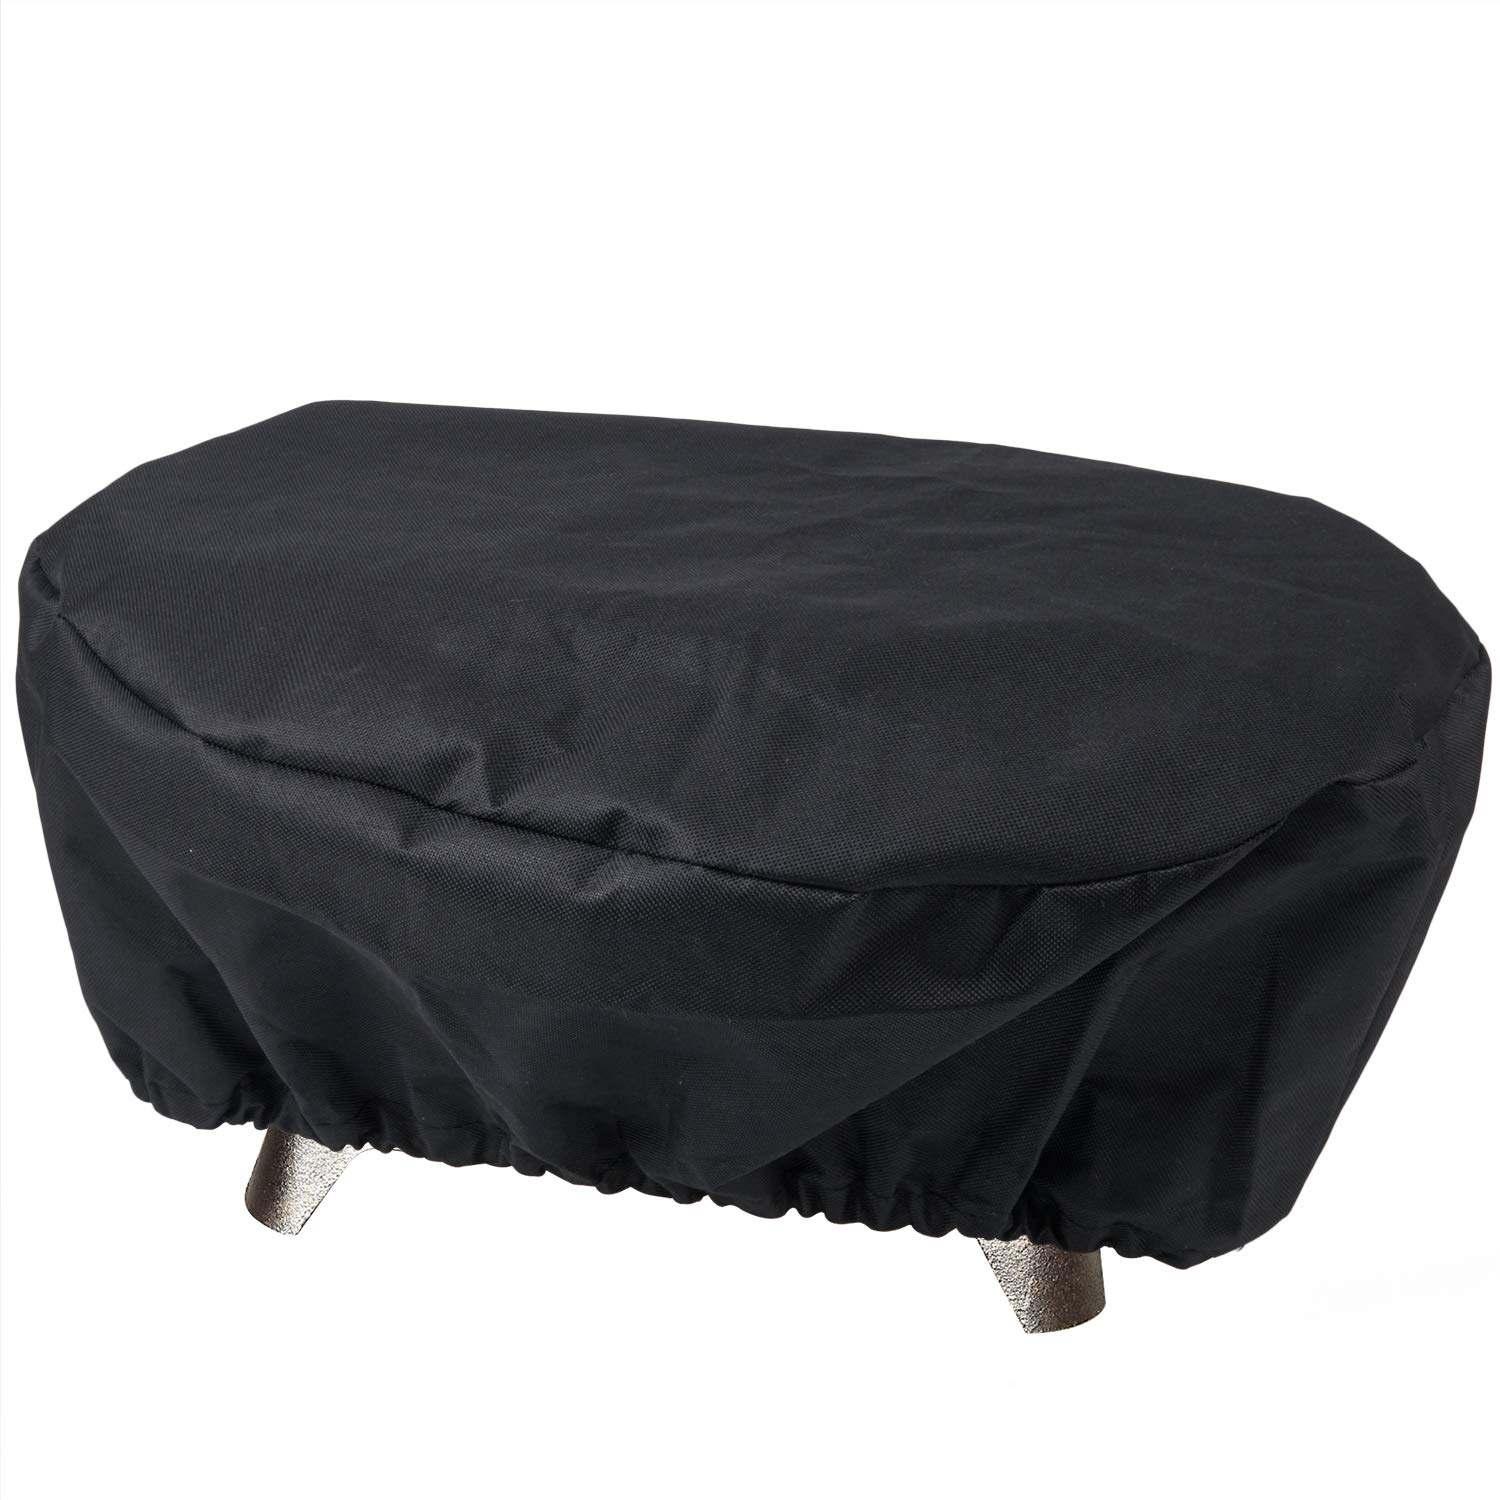 SHINESTAR Grill Cover for Lodge Cast Iron Sportsman's Grill, Small Grill Cover for Coleman Party Propane Grill, 19 × 10 × 8 Inch by SHINESTAR